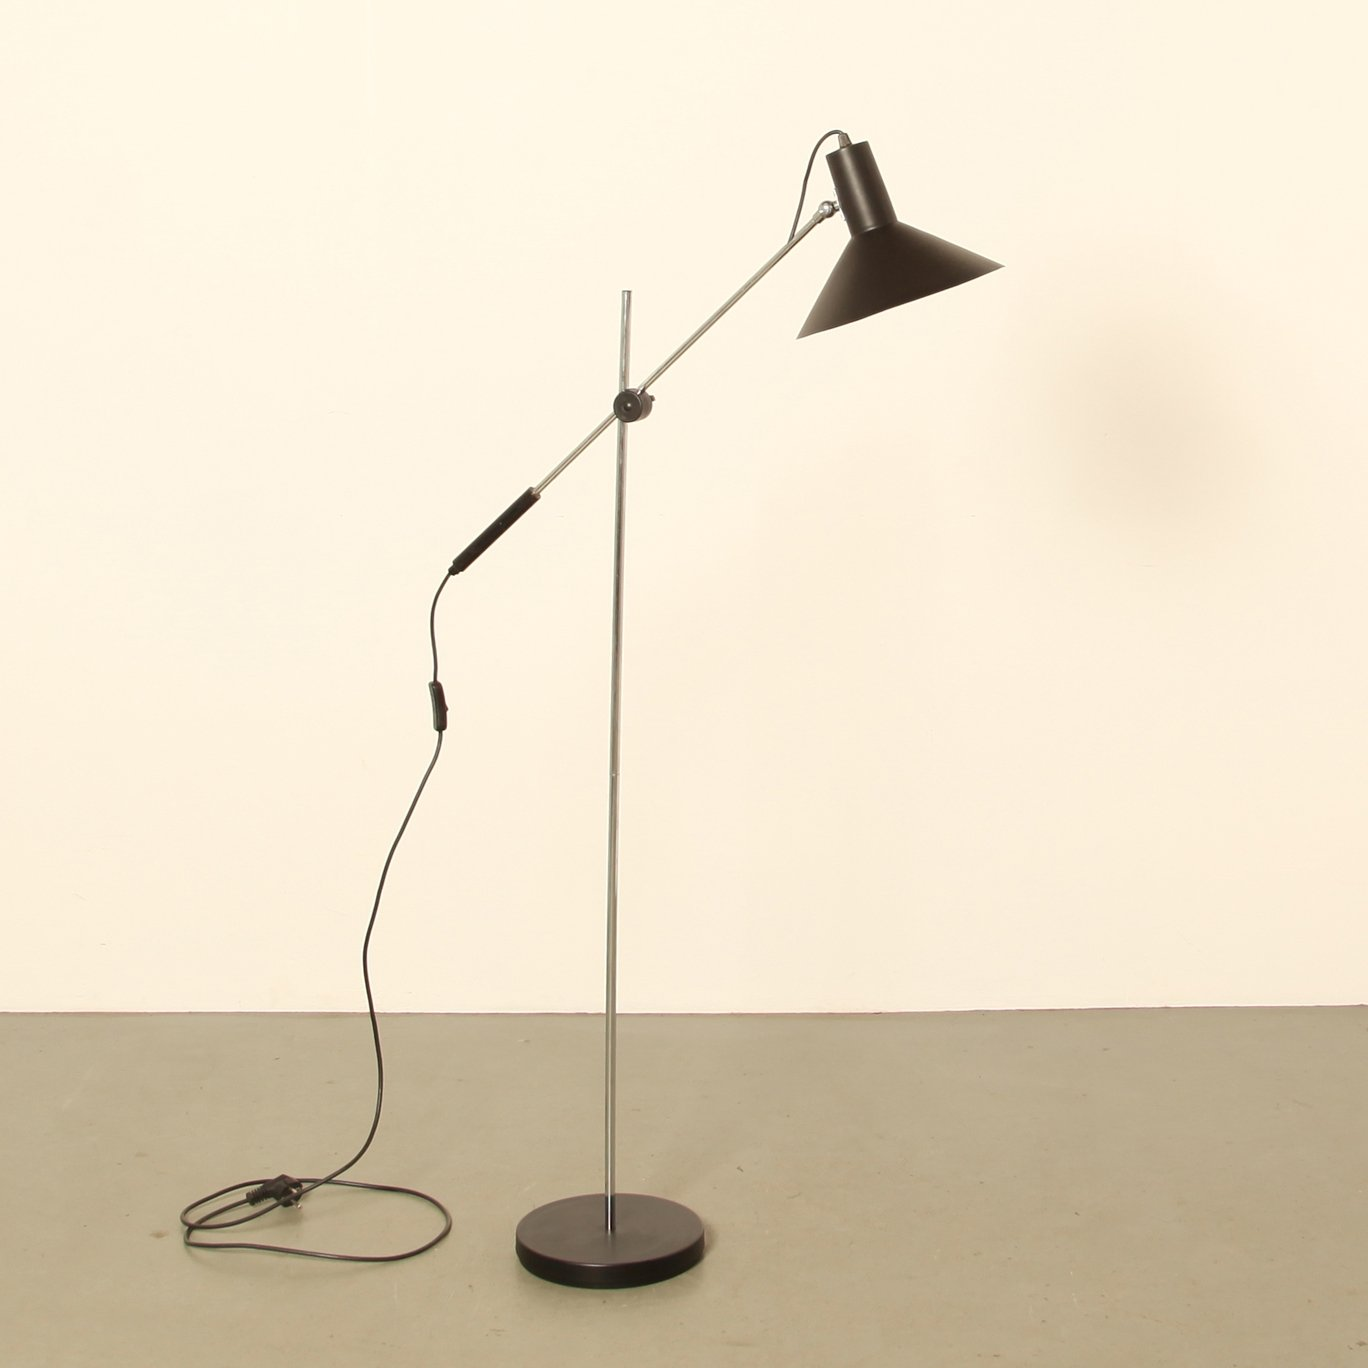 Counterbalance floor lamp by j j m hoogervorst for anvia 74591 counterbalance floor lamp by j j m hoogervorst for anvia aloadofball Image collections